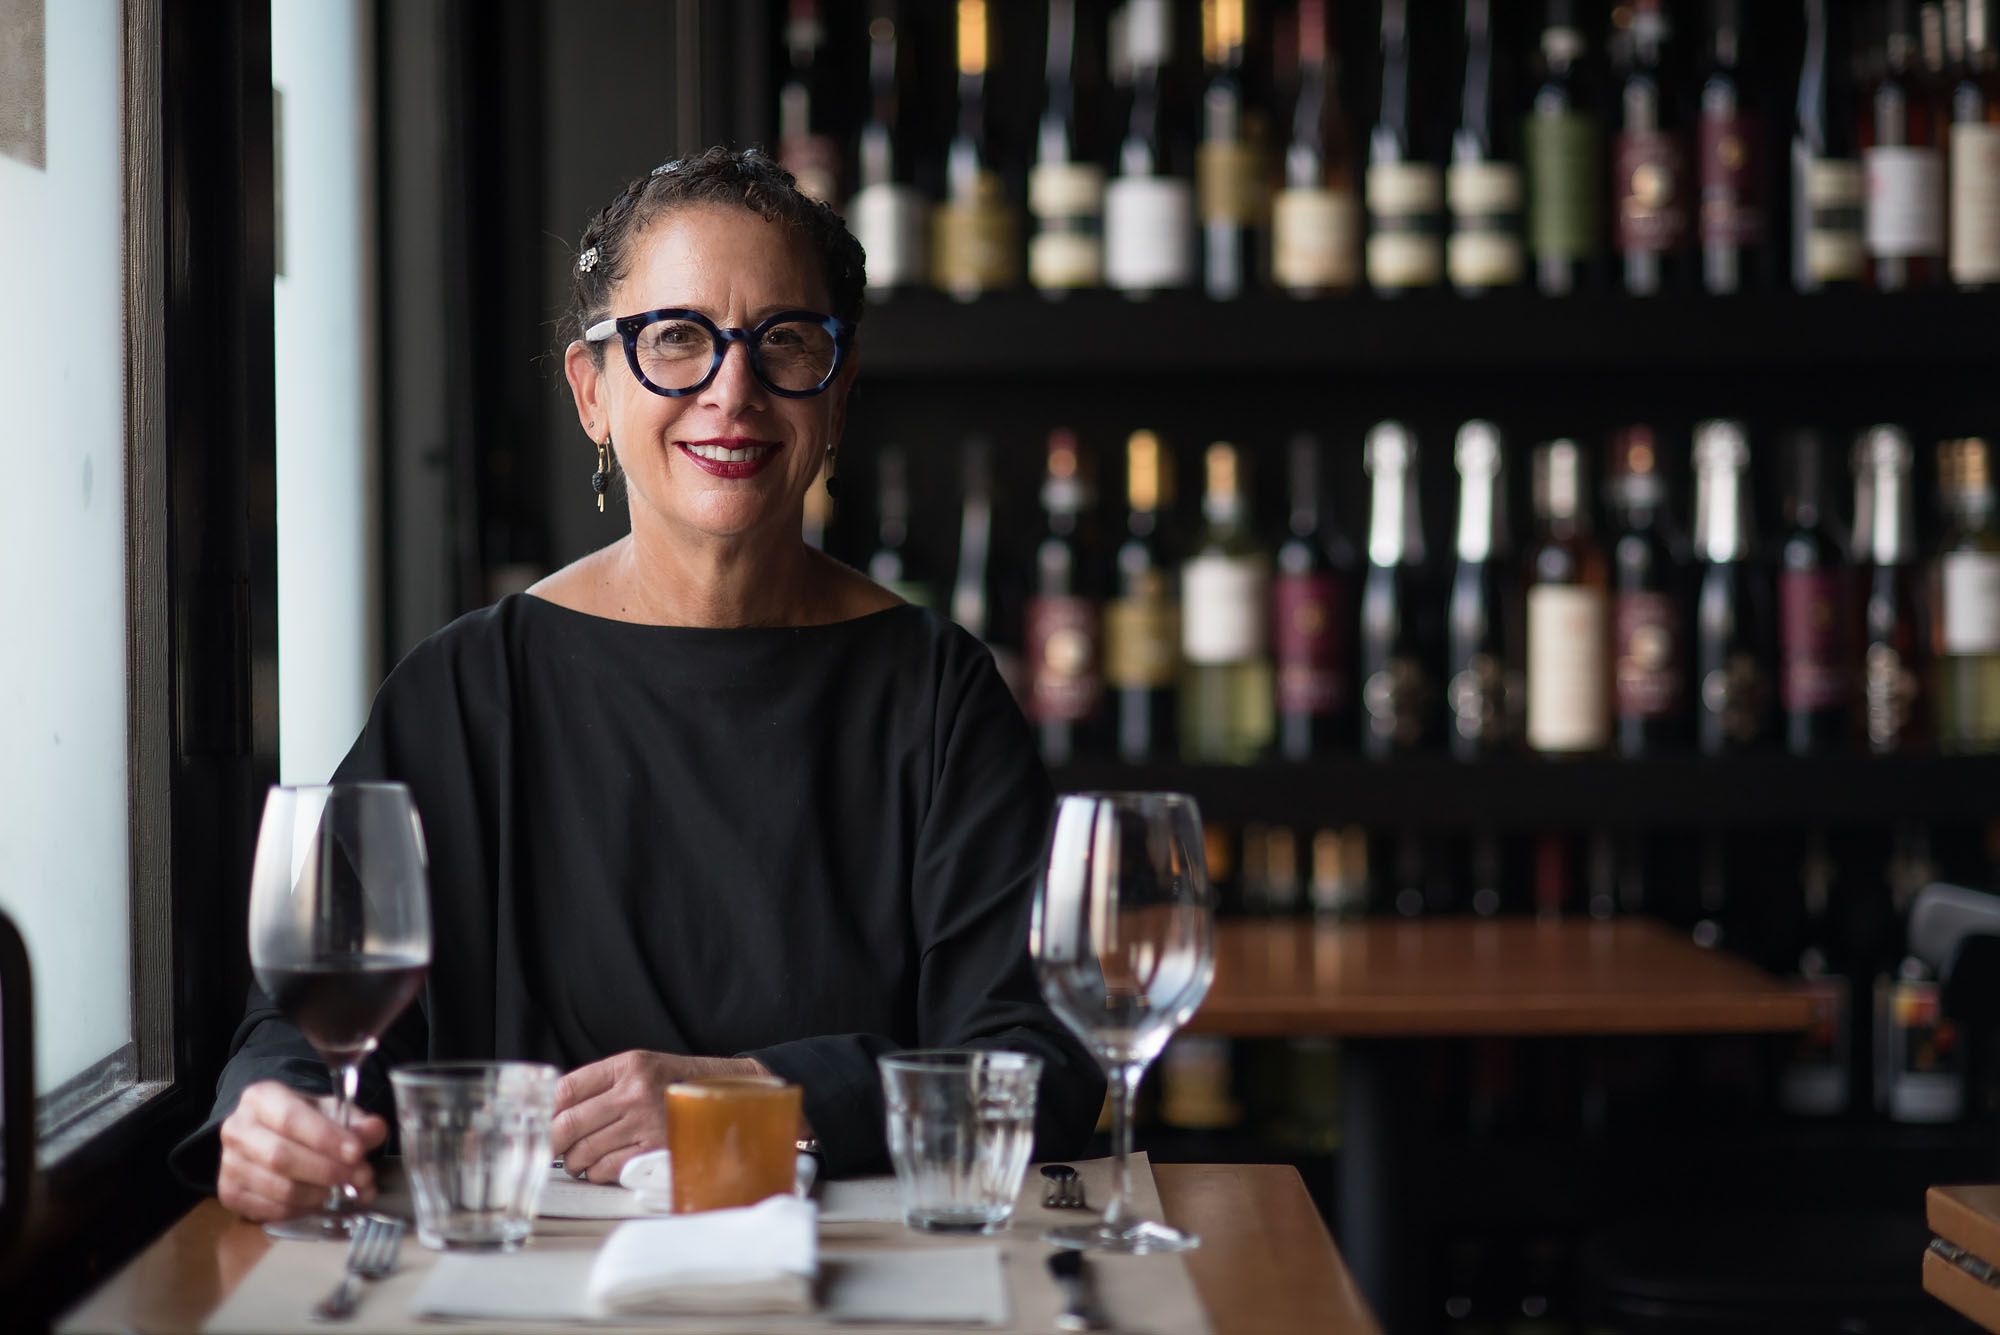 Nancy Silverton Brings Back Grilled Cheese For Late Night Pizzeria Mozza Menu